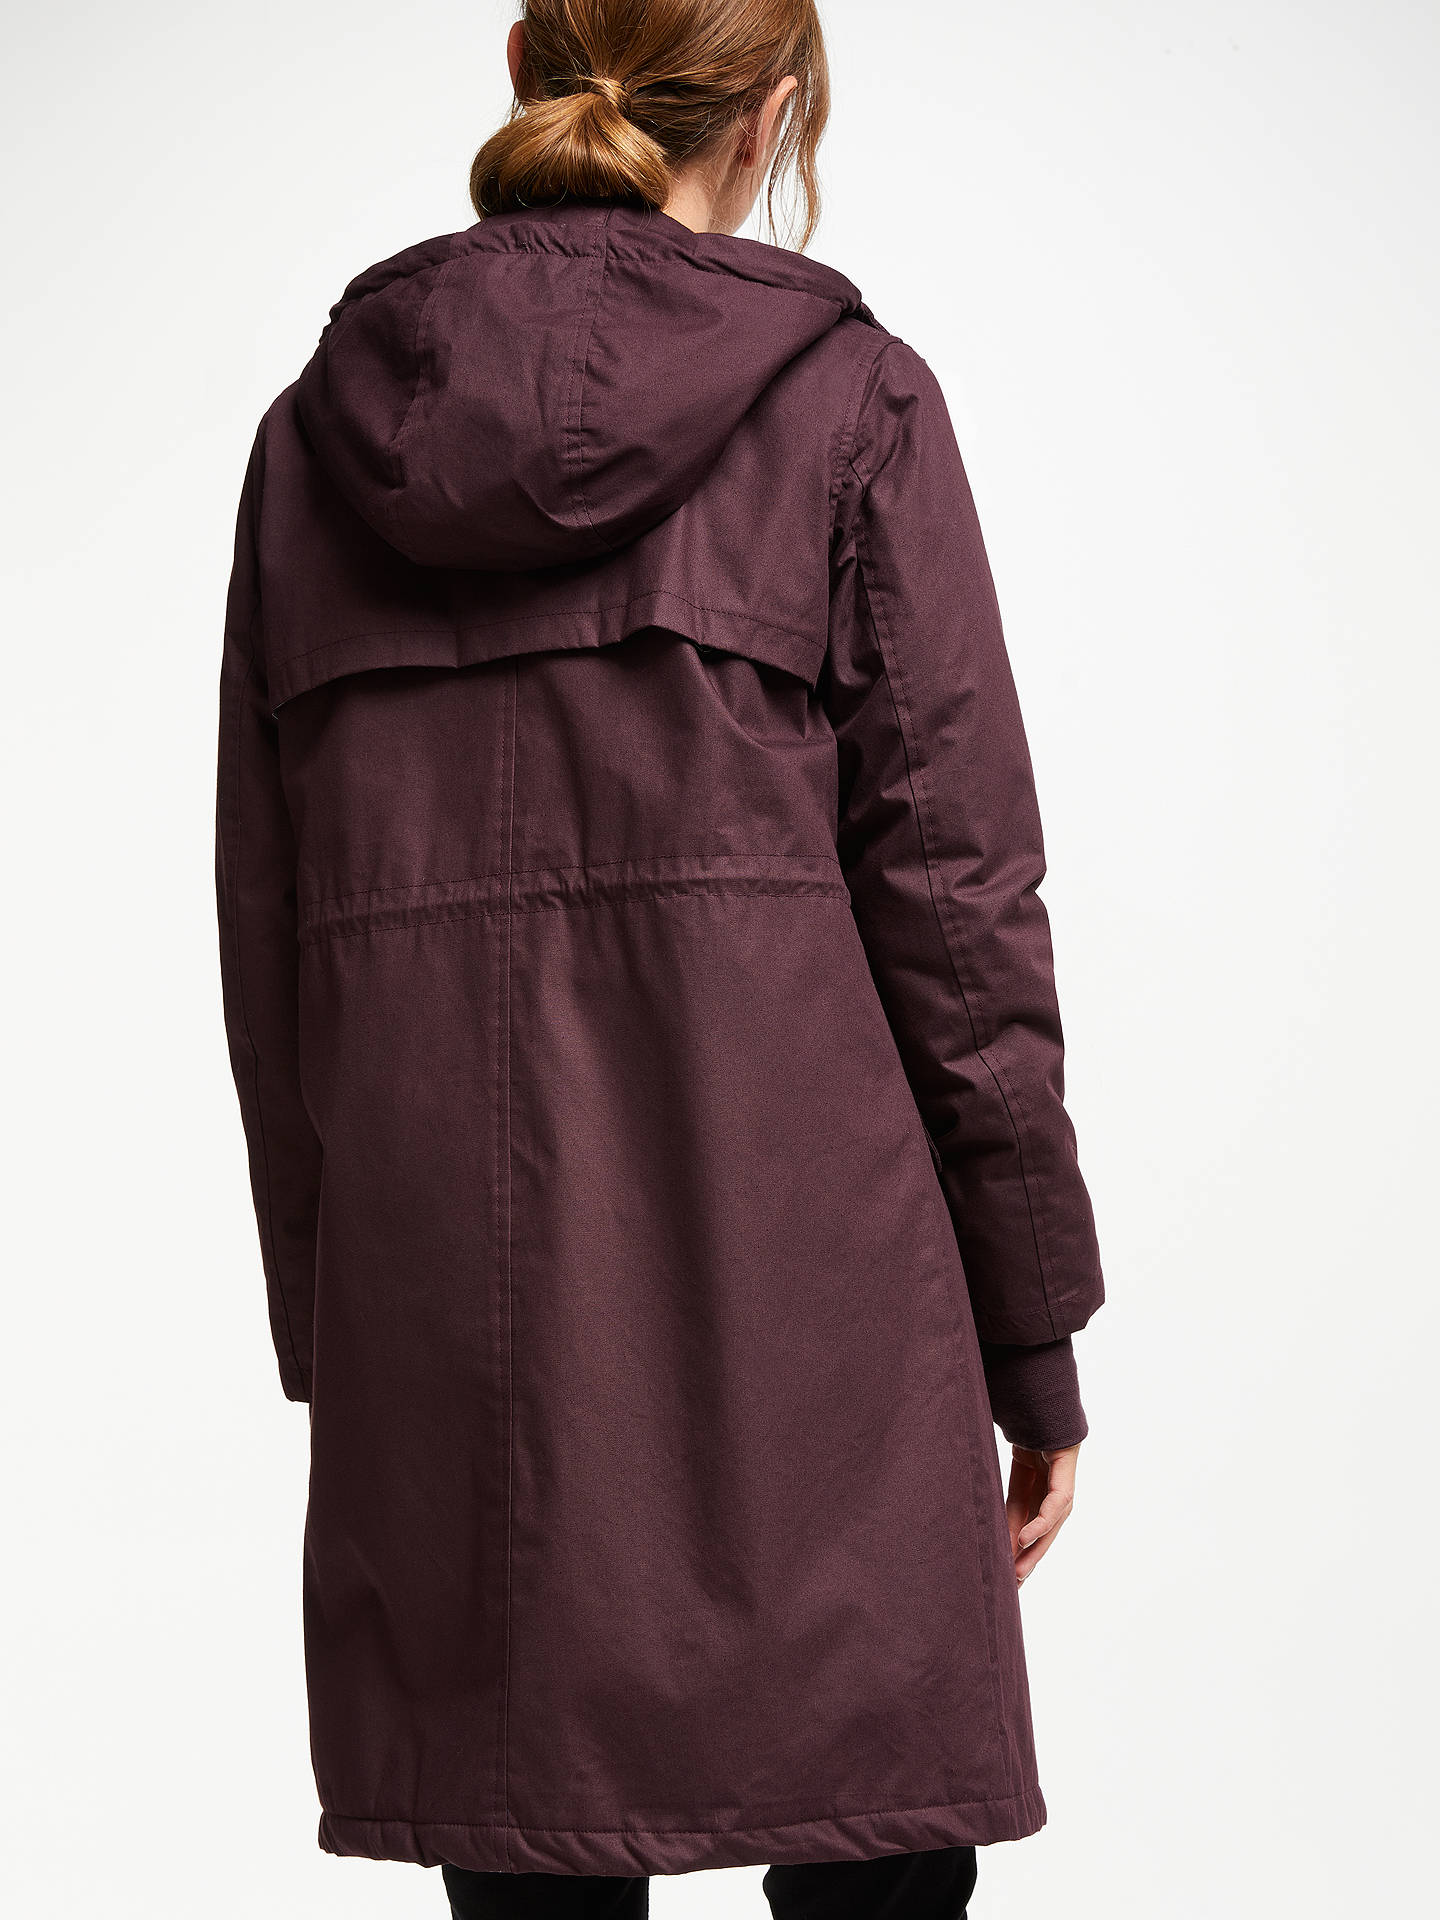 BuyThought Faye Coat, Aubergine, 14 Online at johnlewis.com